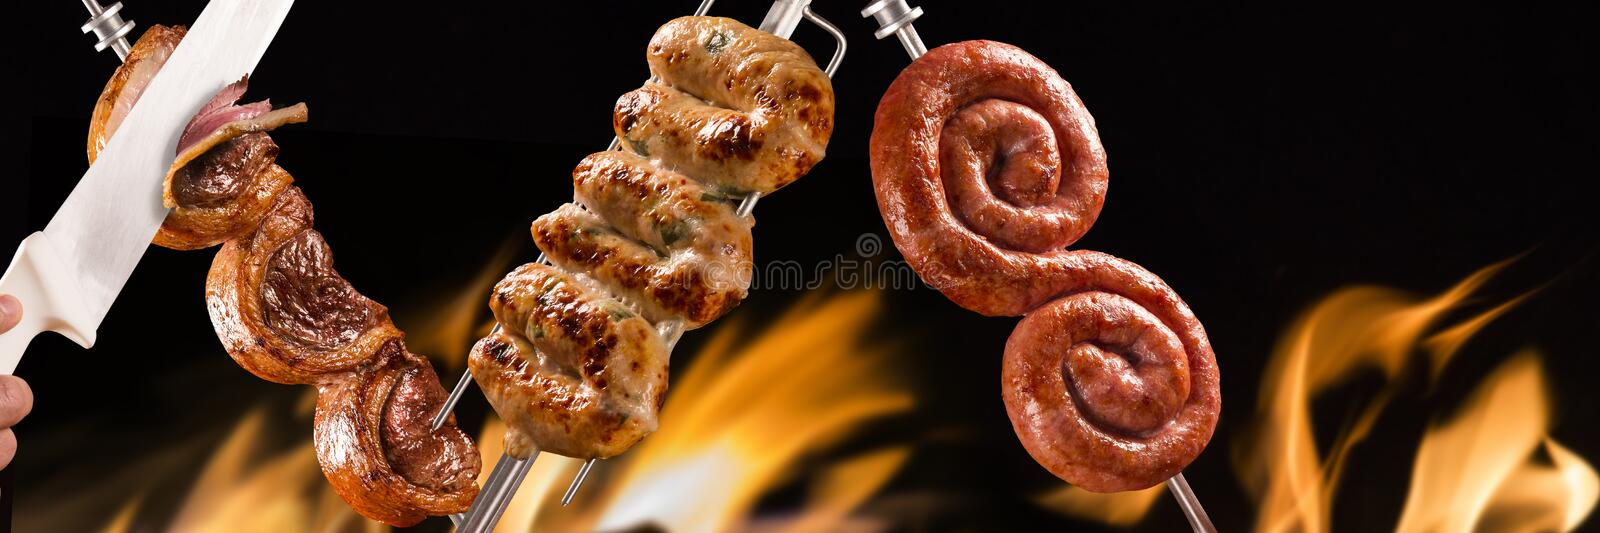 Picanha and cuiabana sausage, traditional Brazilian barbecue.  stock photo